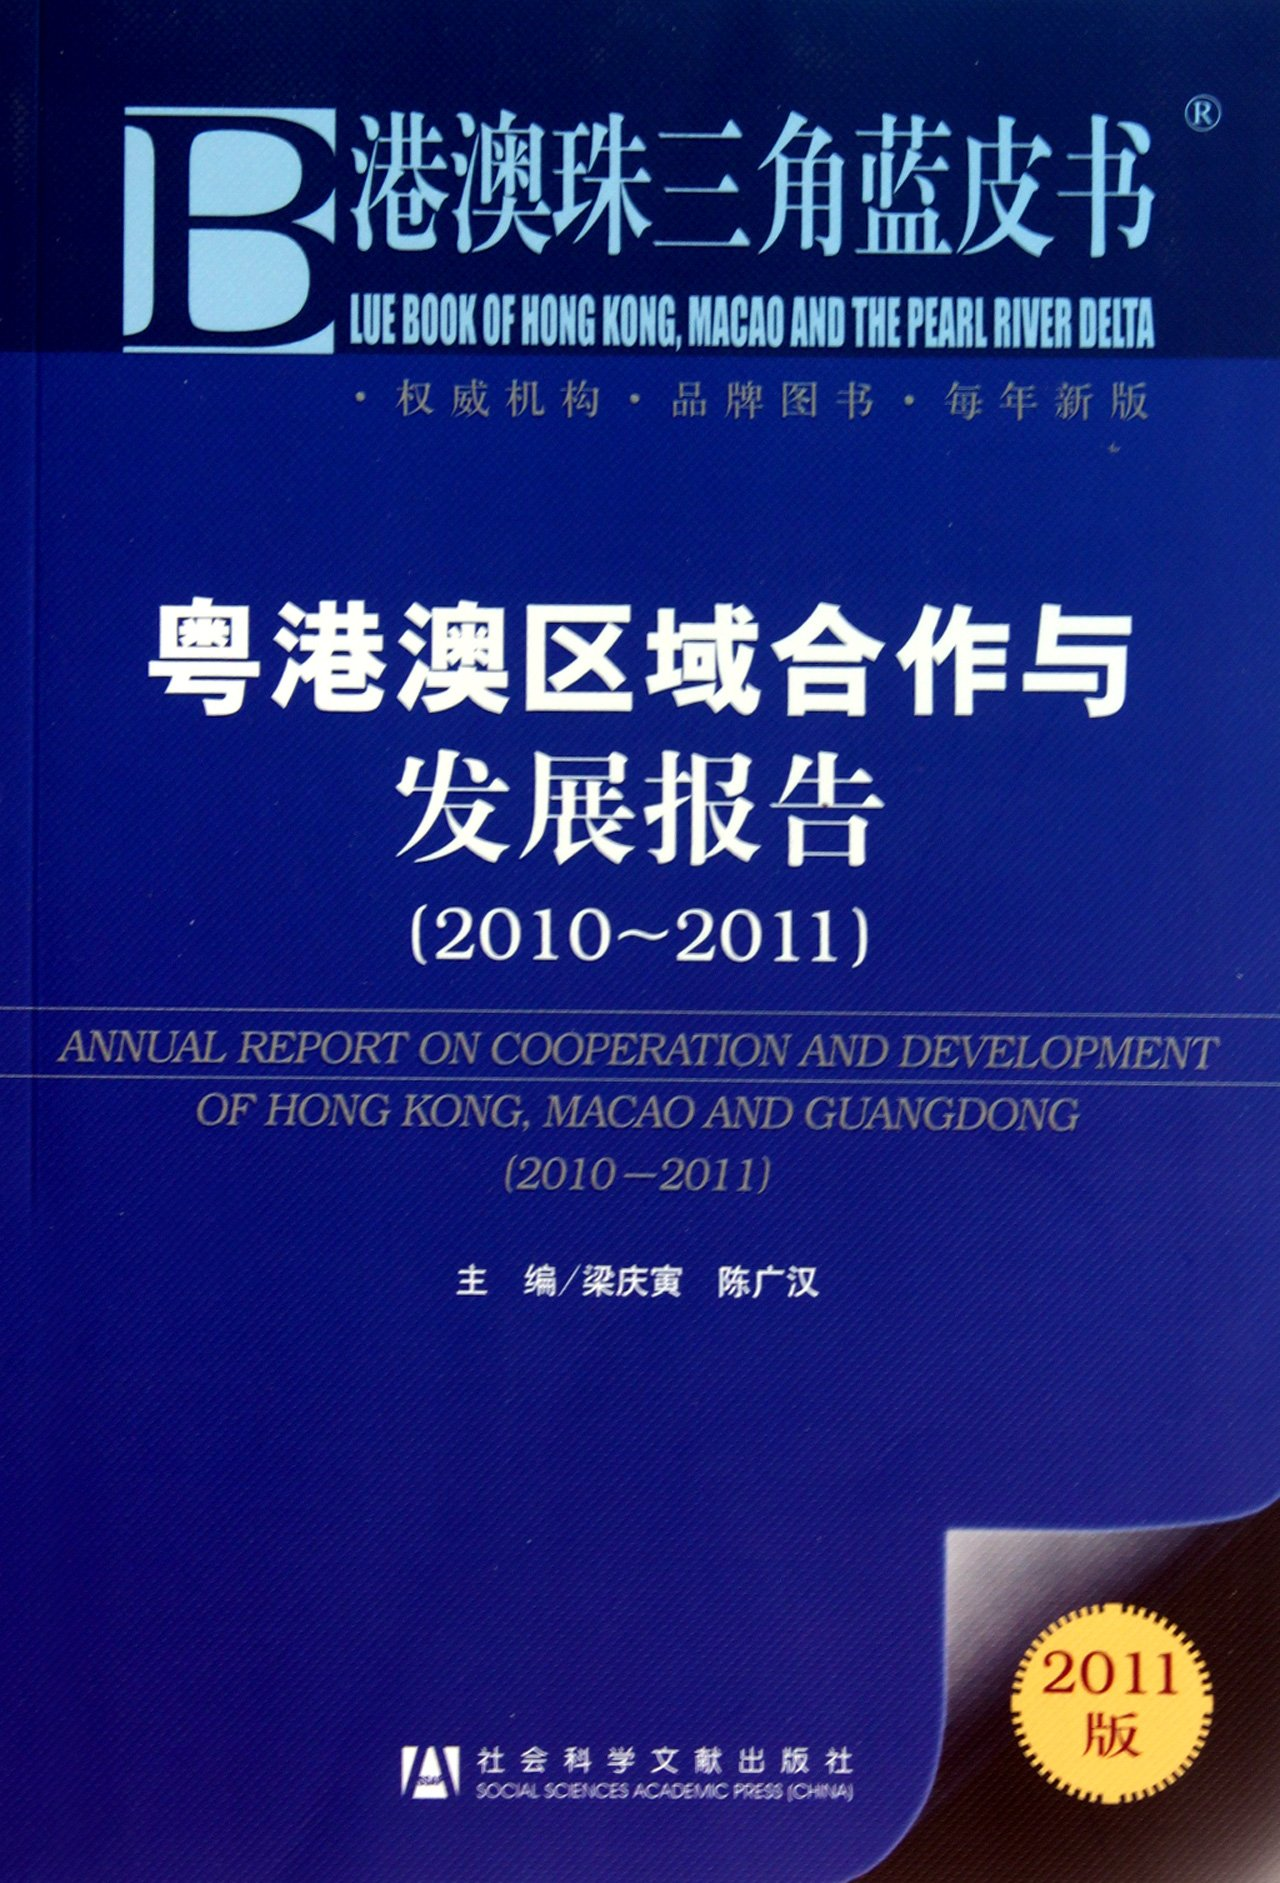 Download Annual Report on Cooperation and Development in Hong Kong, Macao and Guangdong2010-2011 (Chinese Edition) PDF